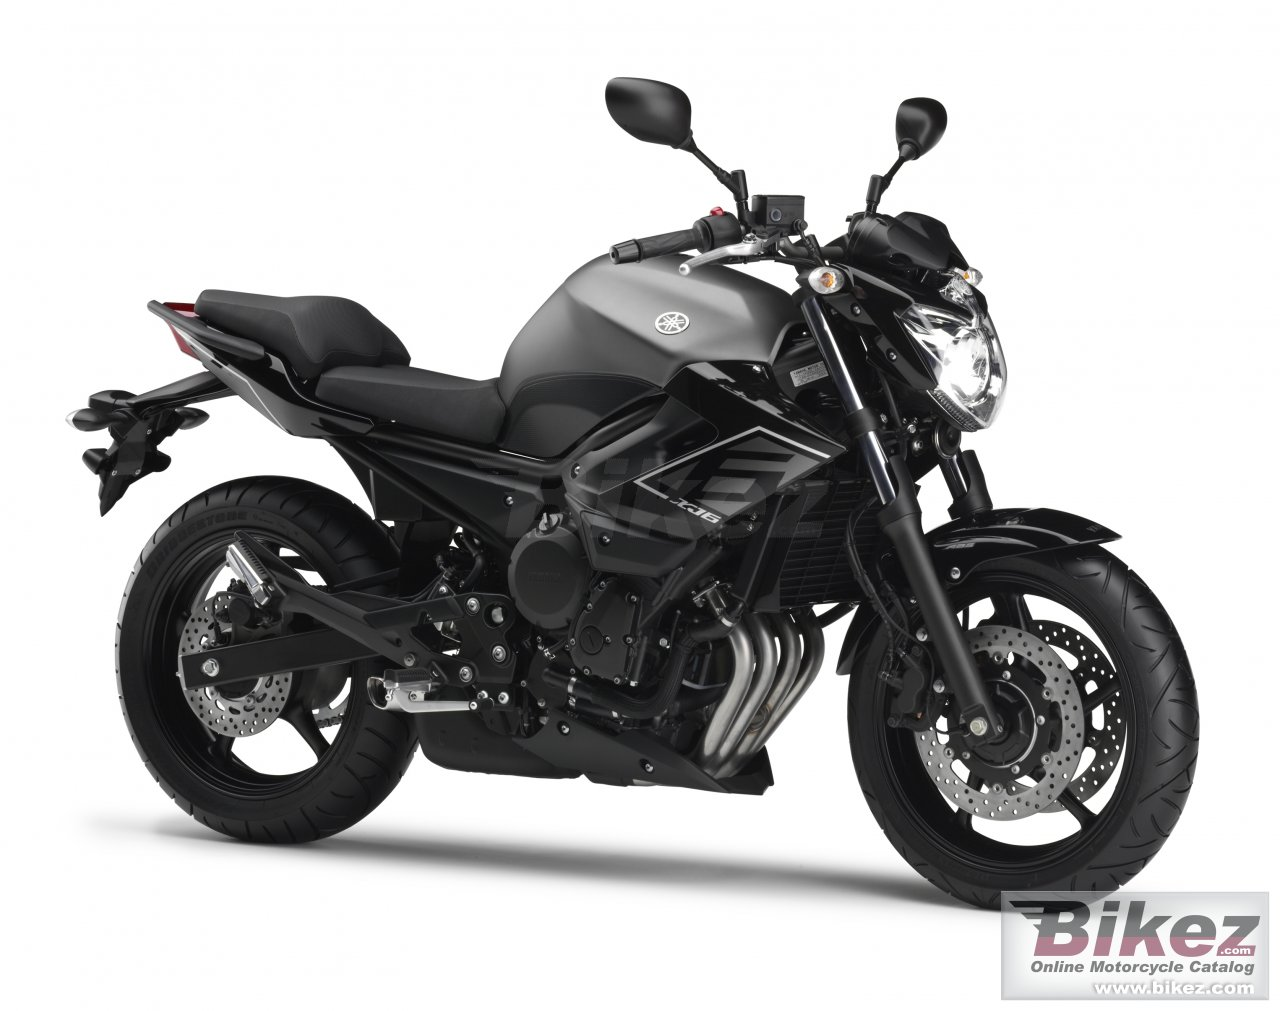 Big Yamaha xj6 sp picture and wallpaper from Bikez.com